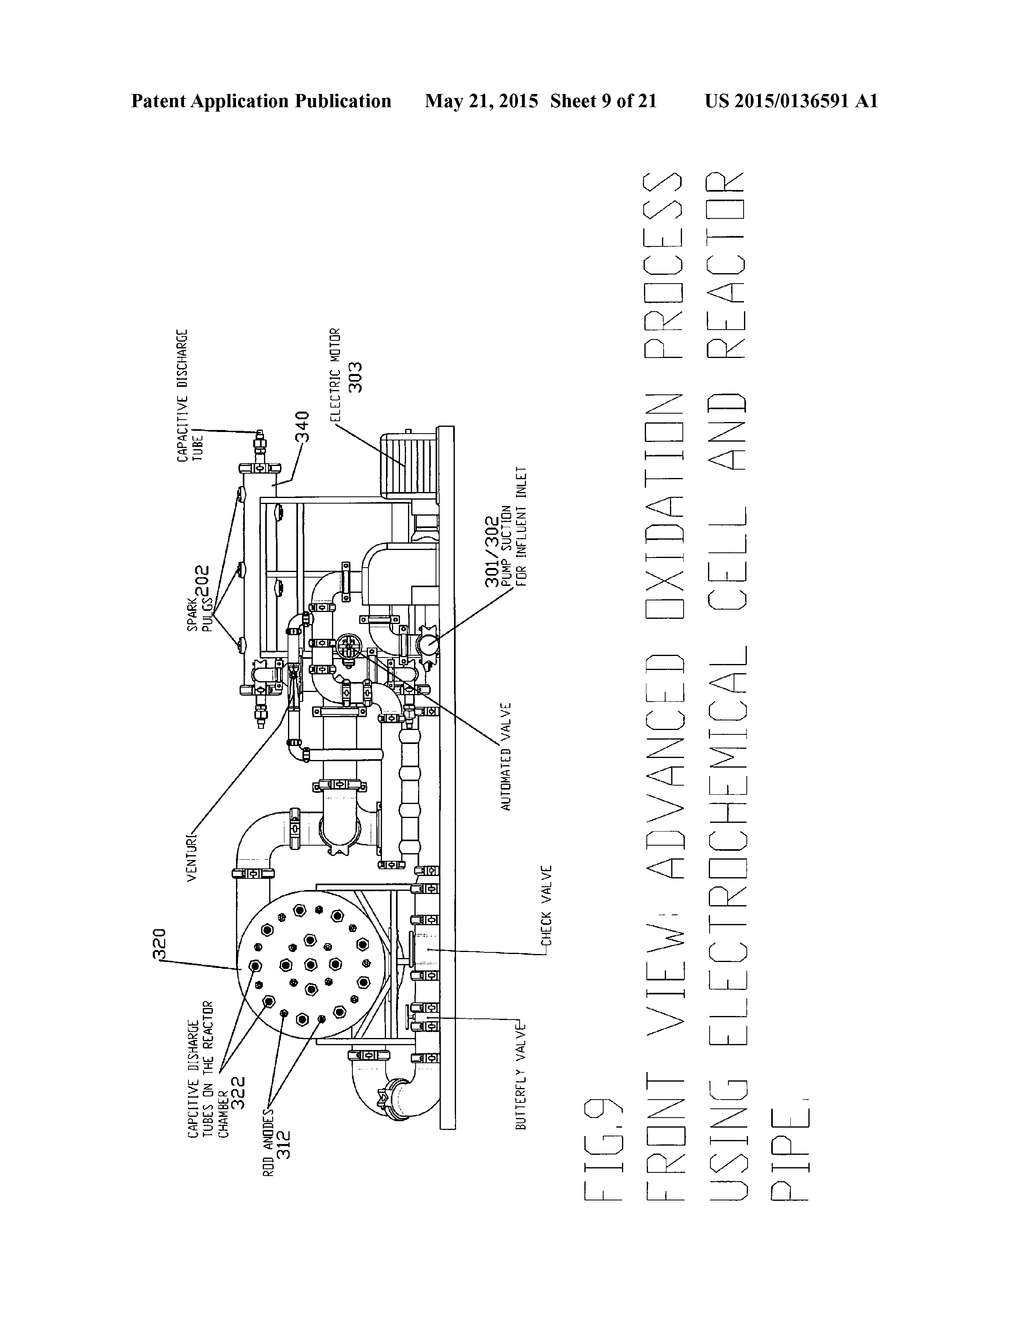 hight resolution of electrolytic cell with advanced oxidation process and electro catalytic paddle electrode diagram schematic and image 10